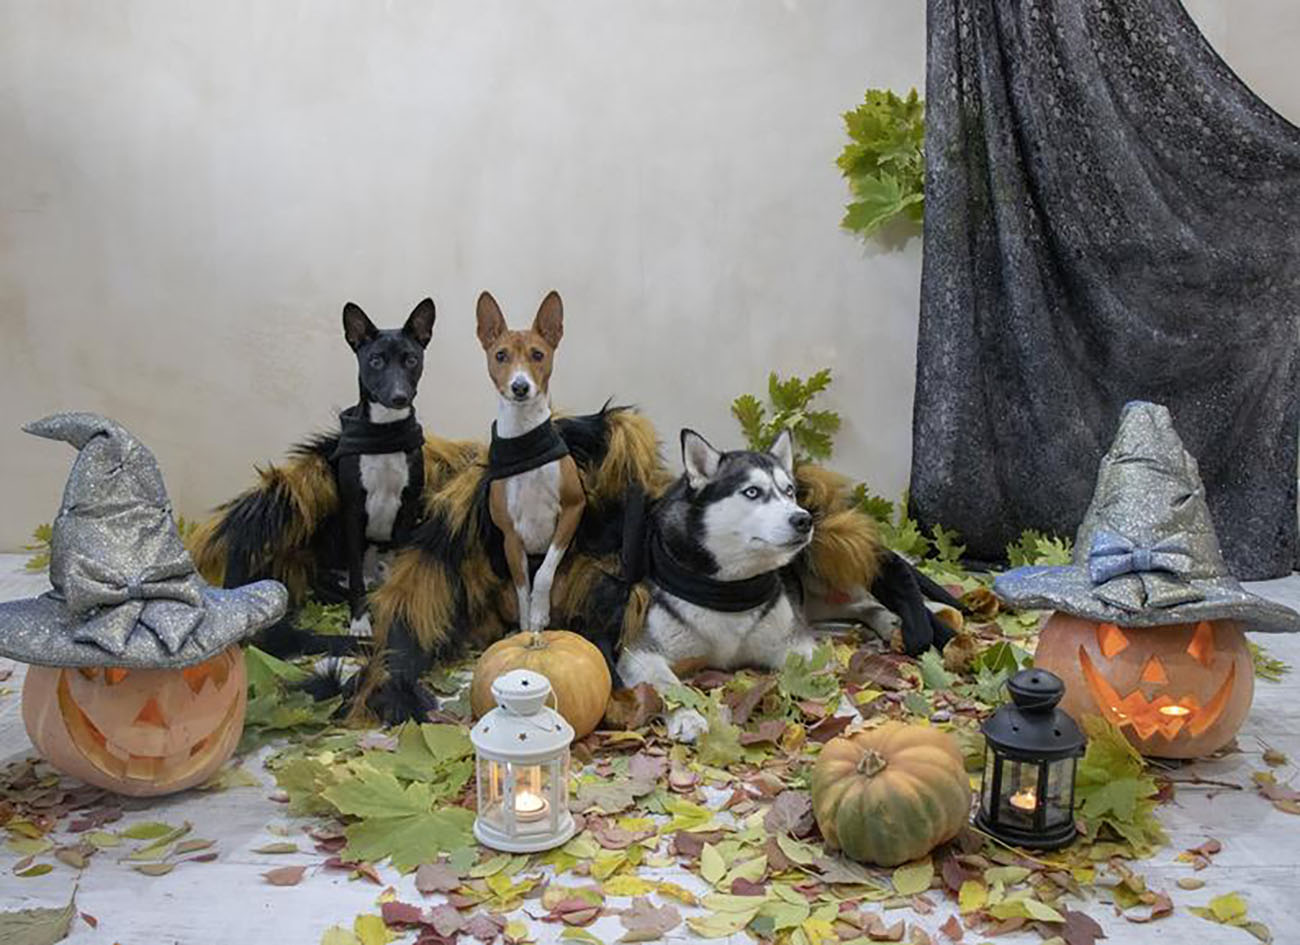 Group of dogs in spider Halloween costumes